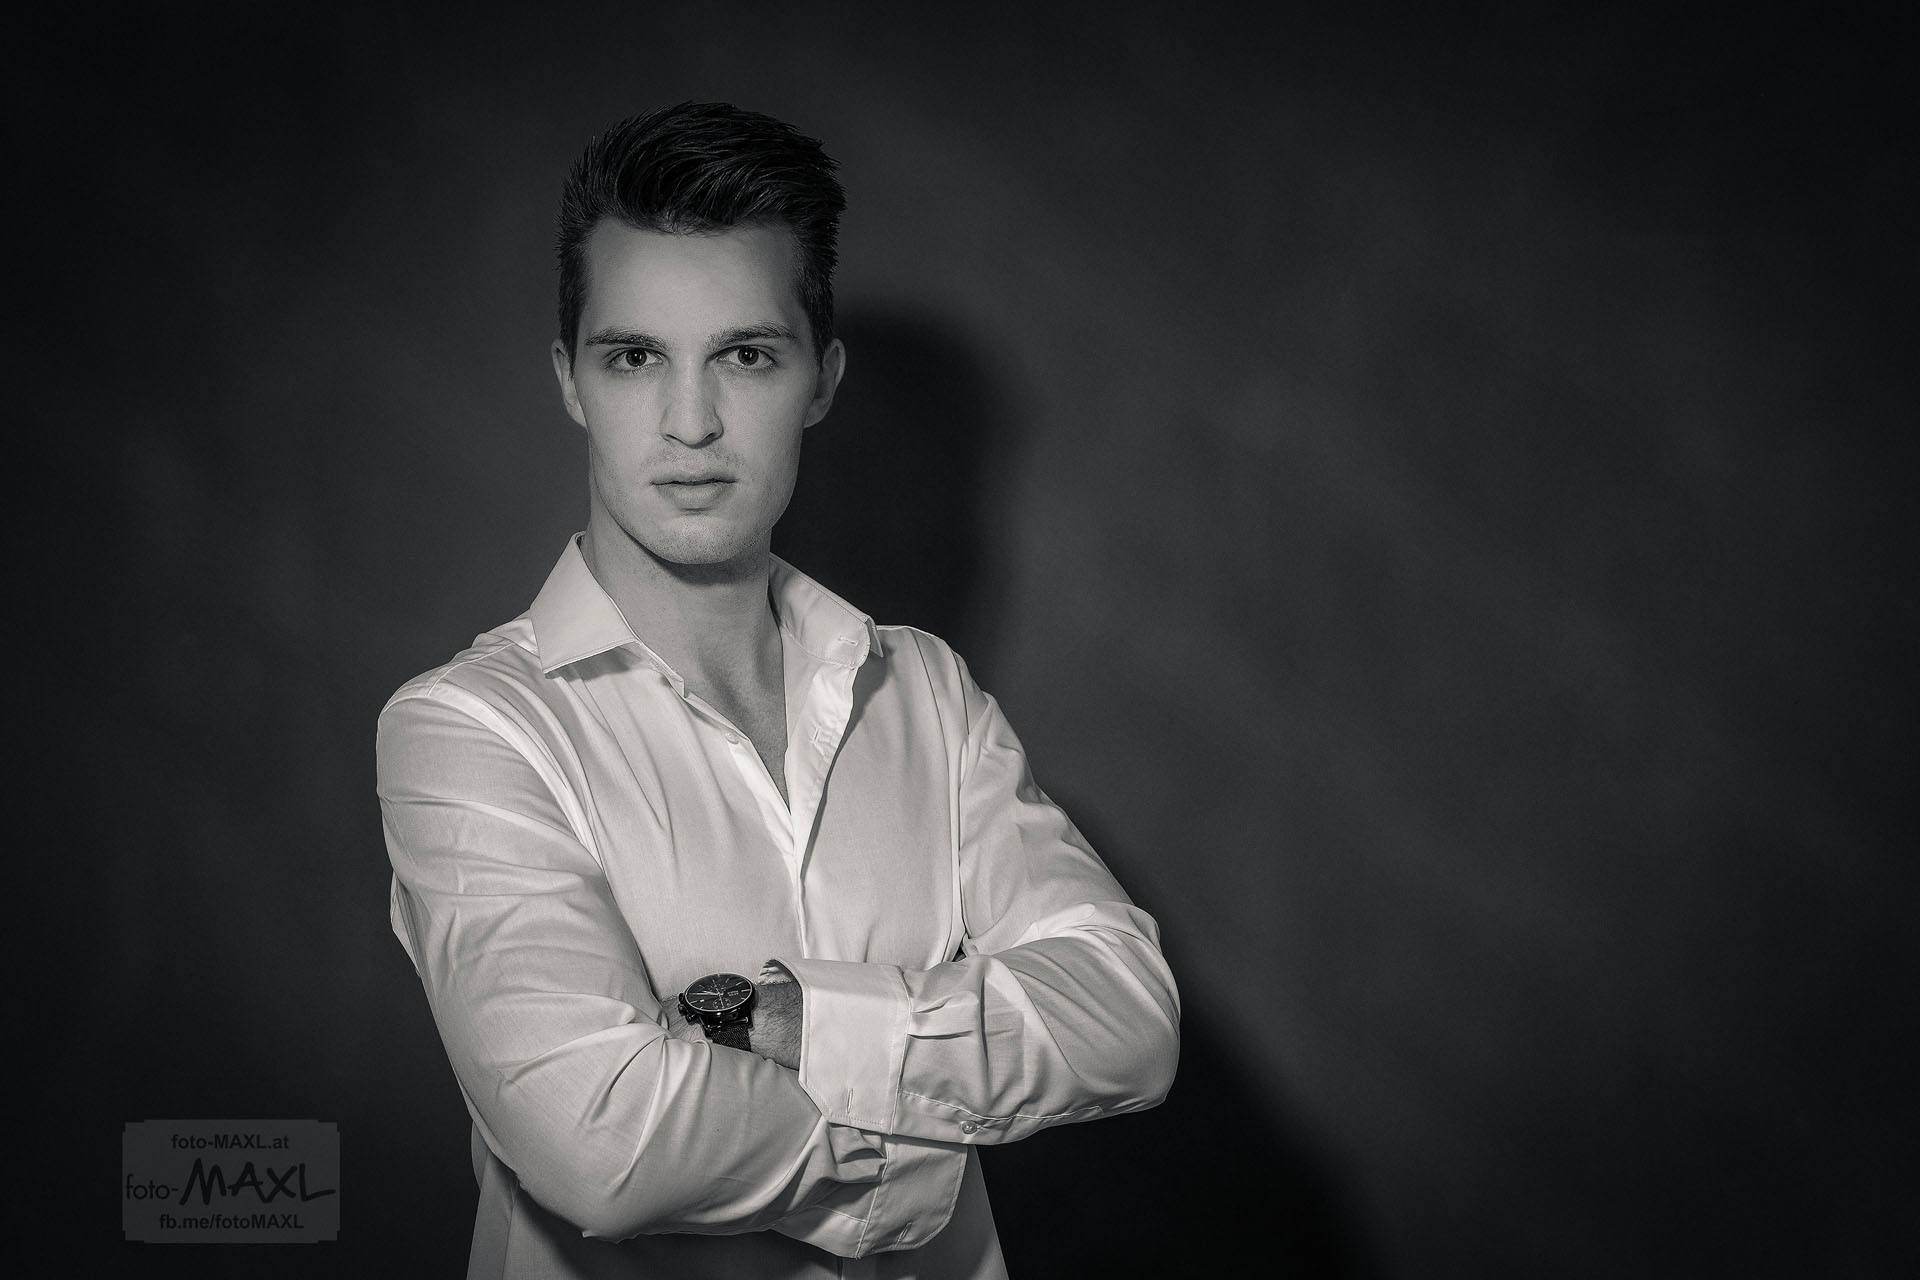 Male Model Manuel Studio Photography http://www.foto-MAXL.at